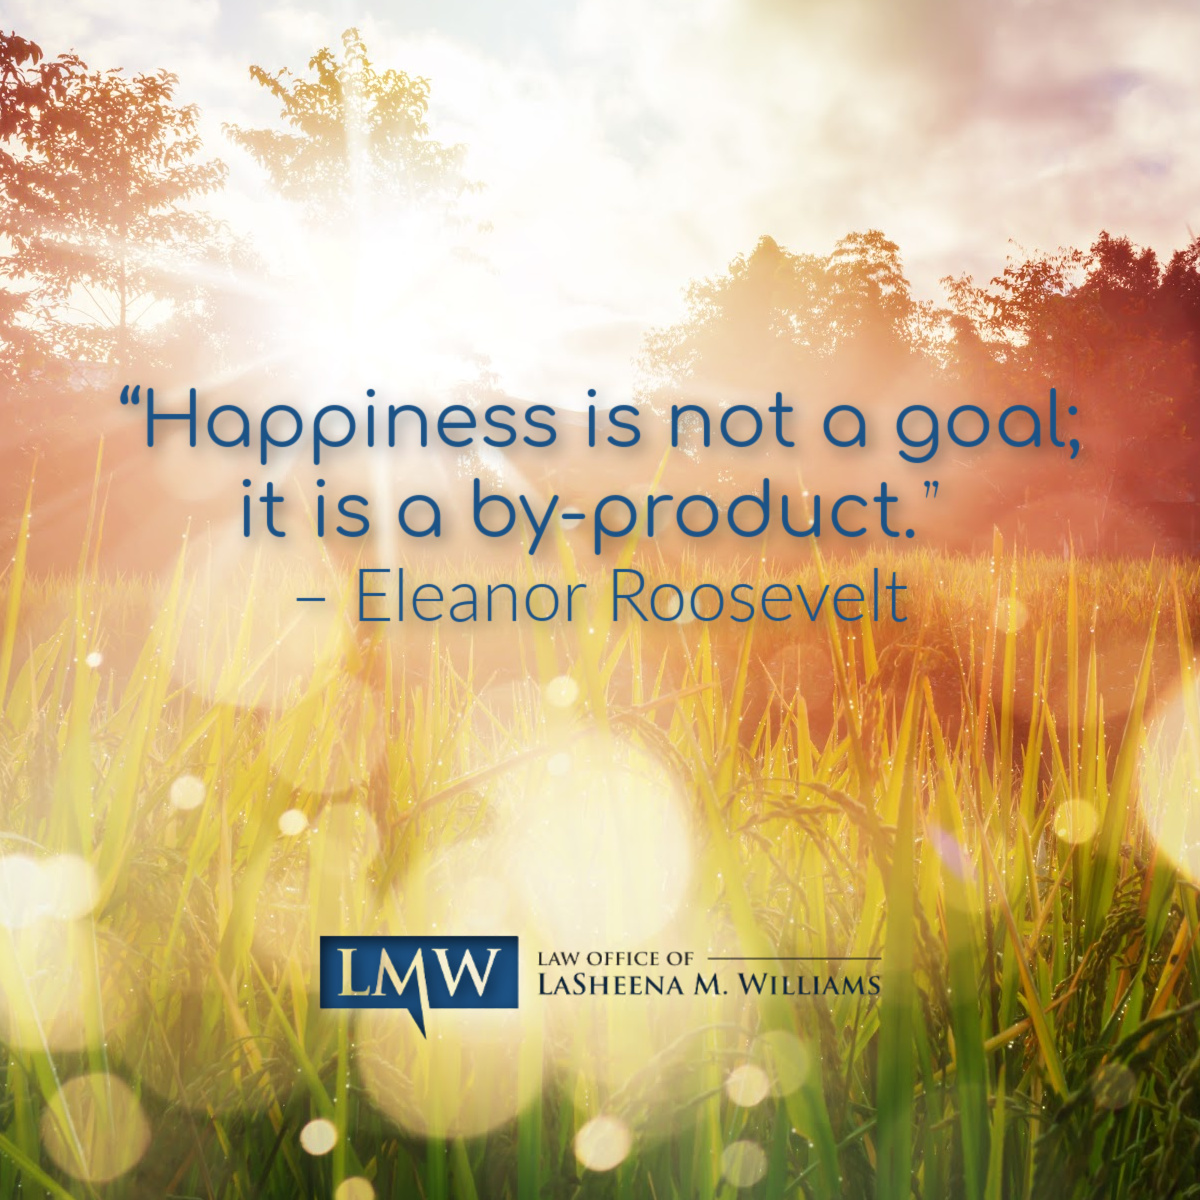 """""""Happiness is not a goal; it is a by-product."""" – Eleanor Roosevelt   #MotivationMonday #QOTD #Quotable #Quoteoftheday #MotivationalMoment ElenaorRooseveltQuote #HappinessQuote"""